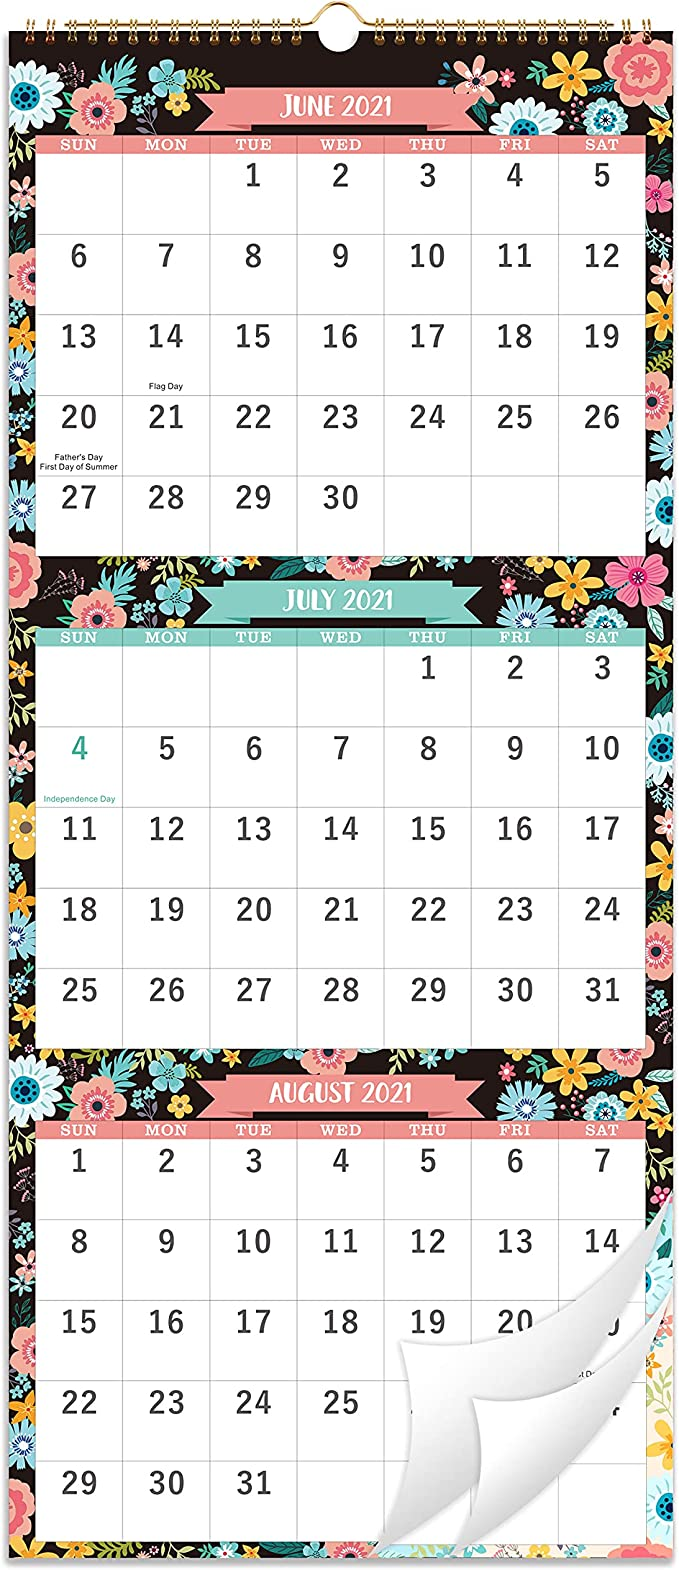 3 Month Calendar 2022.Amazon Com 2021 2022 Calendar 3 Month Display Wall Calendar Folded In One Month 11 3 X 26 When Opened June 2021 August 2022 Vertical Calendar With Thick Paper For Daily Organizing Planning Office Products